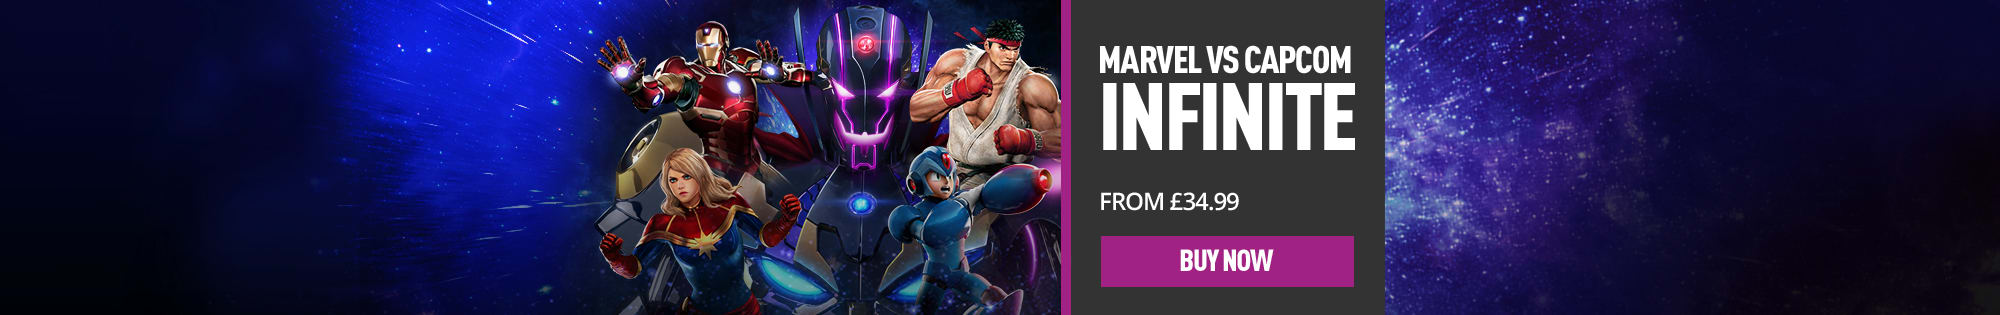 Marvel vs. Capcom Infinite Deluxe Edition: Out now! - Homepage Banner